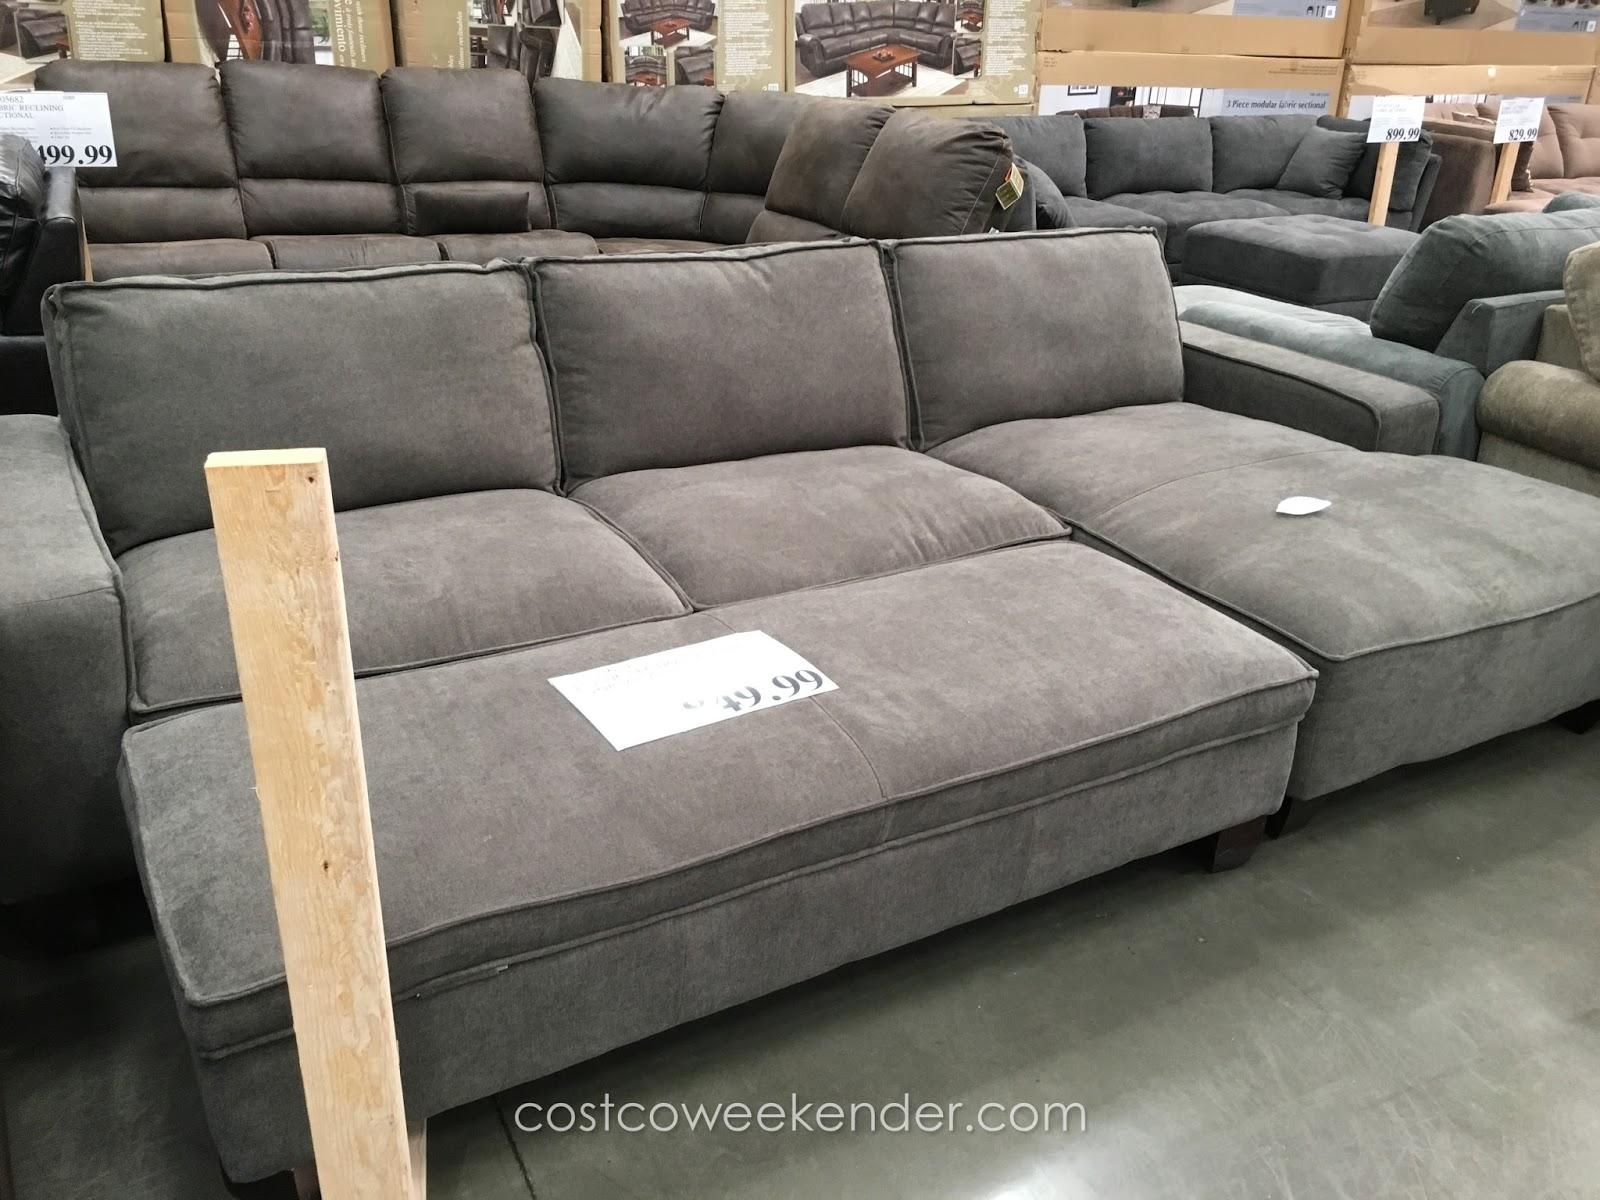 Sleeper Sectional Sofa With Storage Chaise | Tehranmix Decoration In Sectional Sofa With Storage (Image 15 of 20)